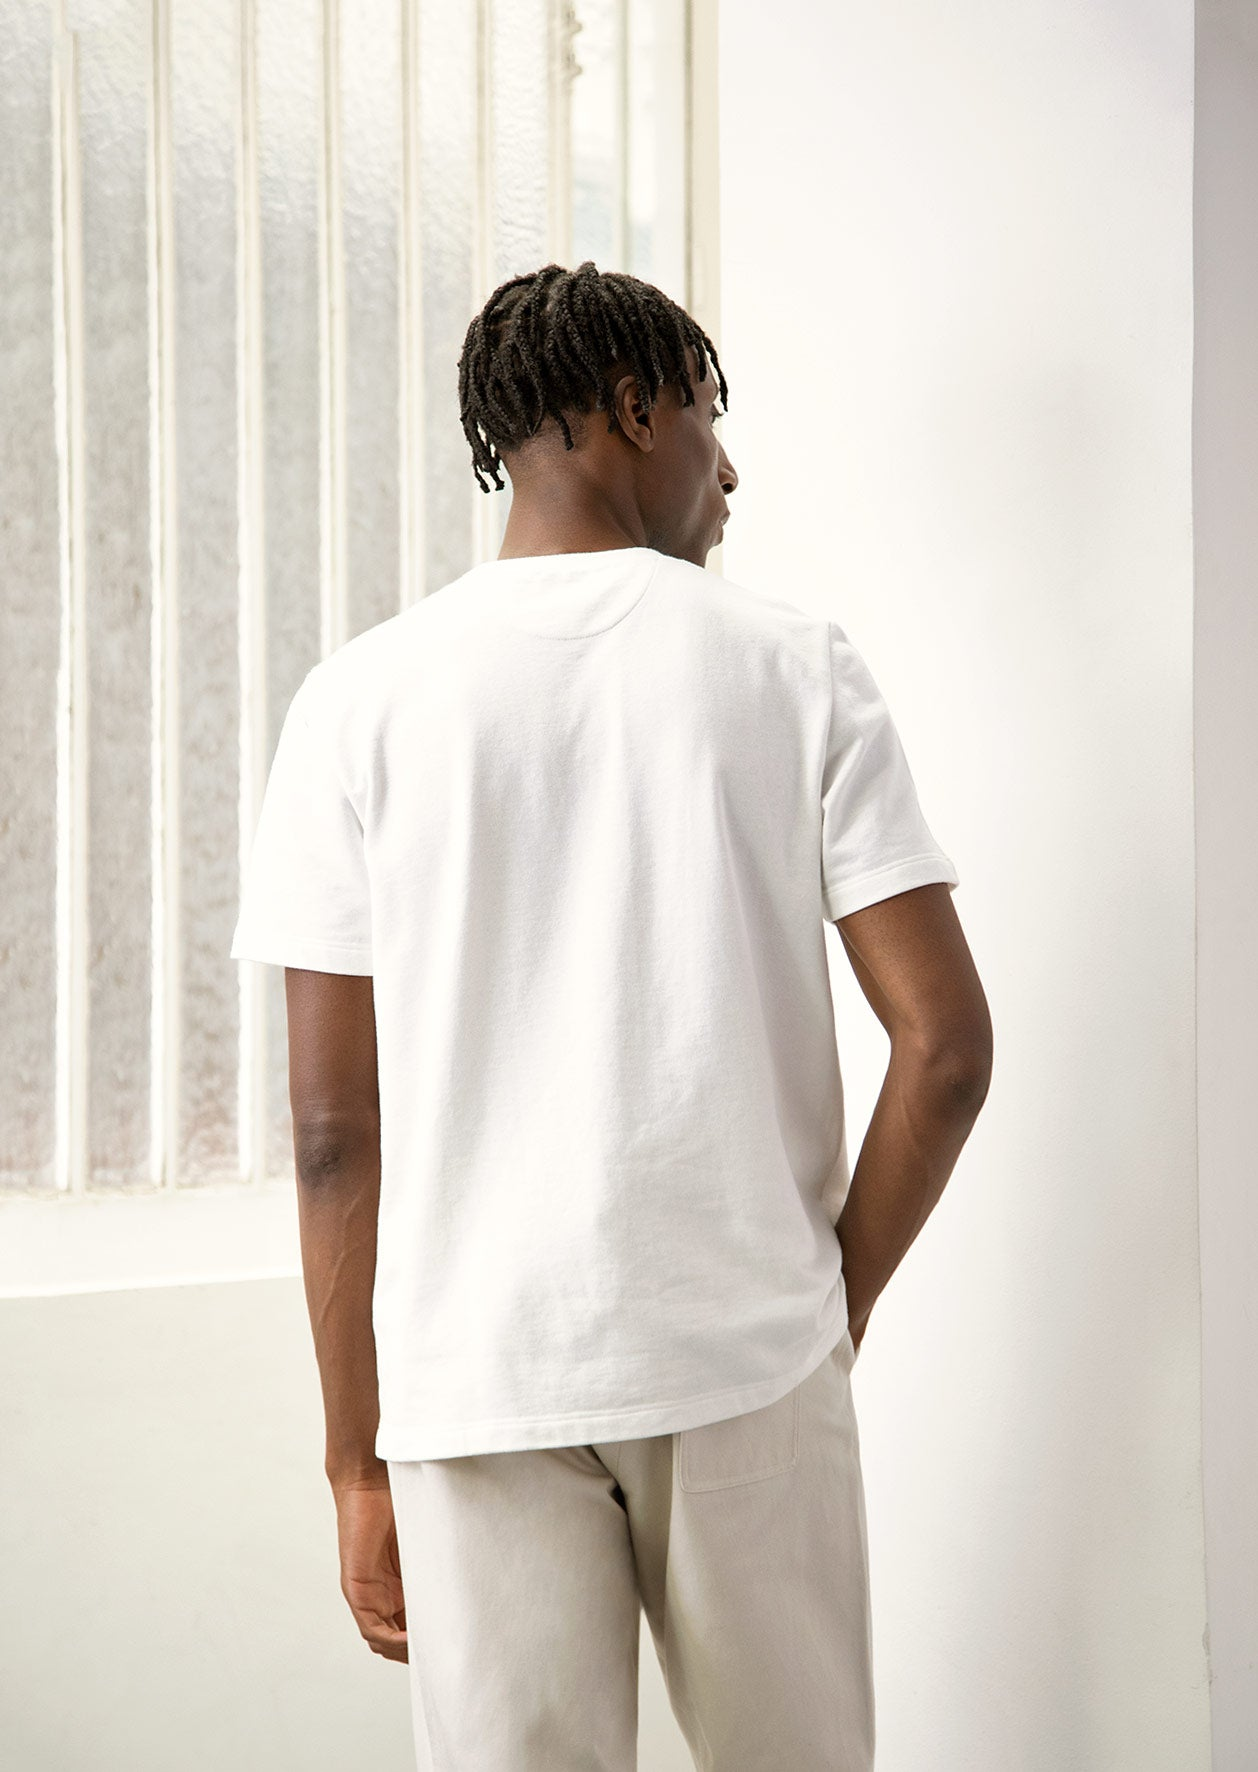 De Bonne Facture - Pocket t-shirt - Heavy weight cotton - Off white